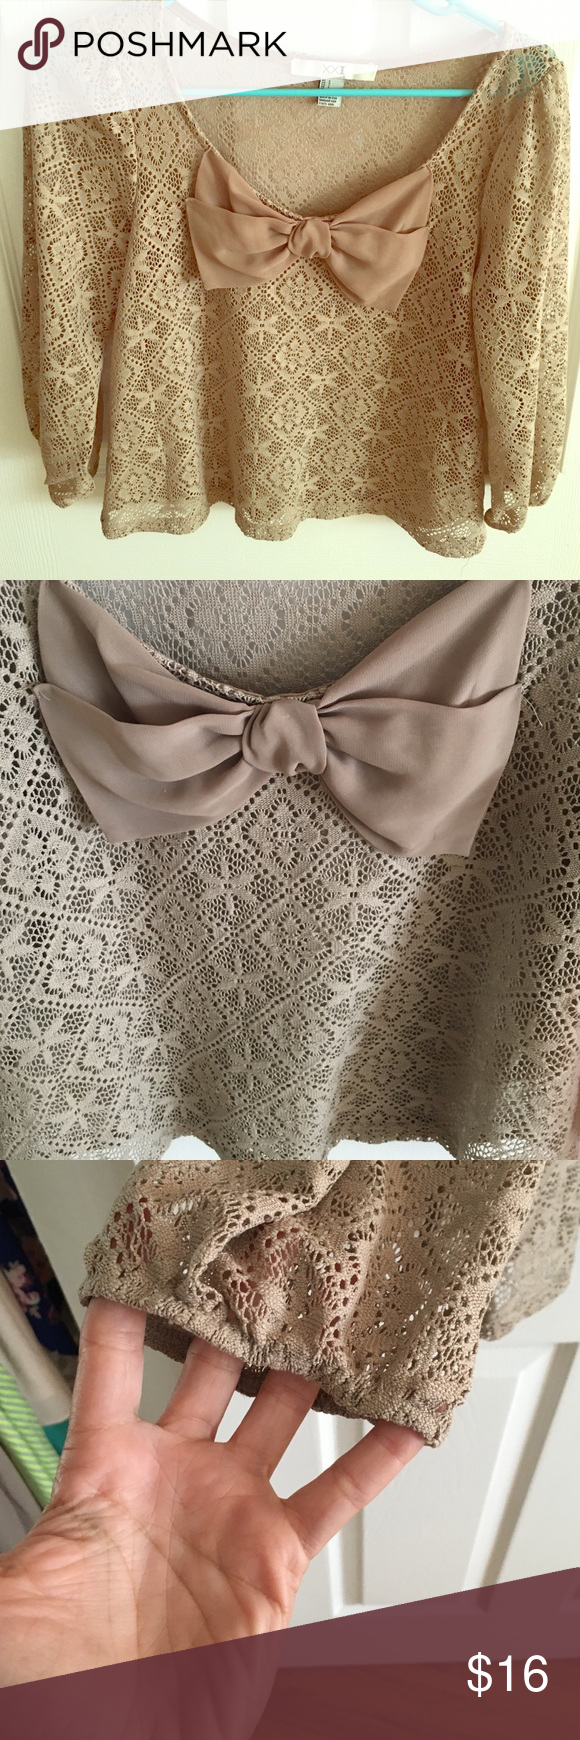 Quarter sleeve lace Bow blouse Quarter sleeve beige/taupe color lace blouse. Love the bow detailing! Sleeves are fitted at cuff. Slightly cropped. Lightly worn. No signs of wear Forever 21 Tops Blouses